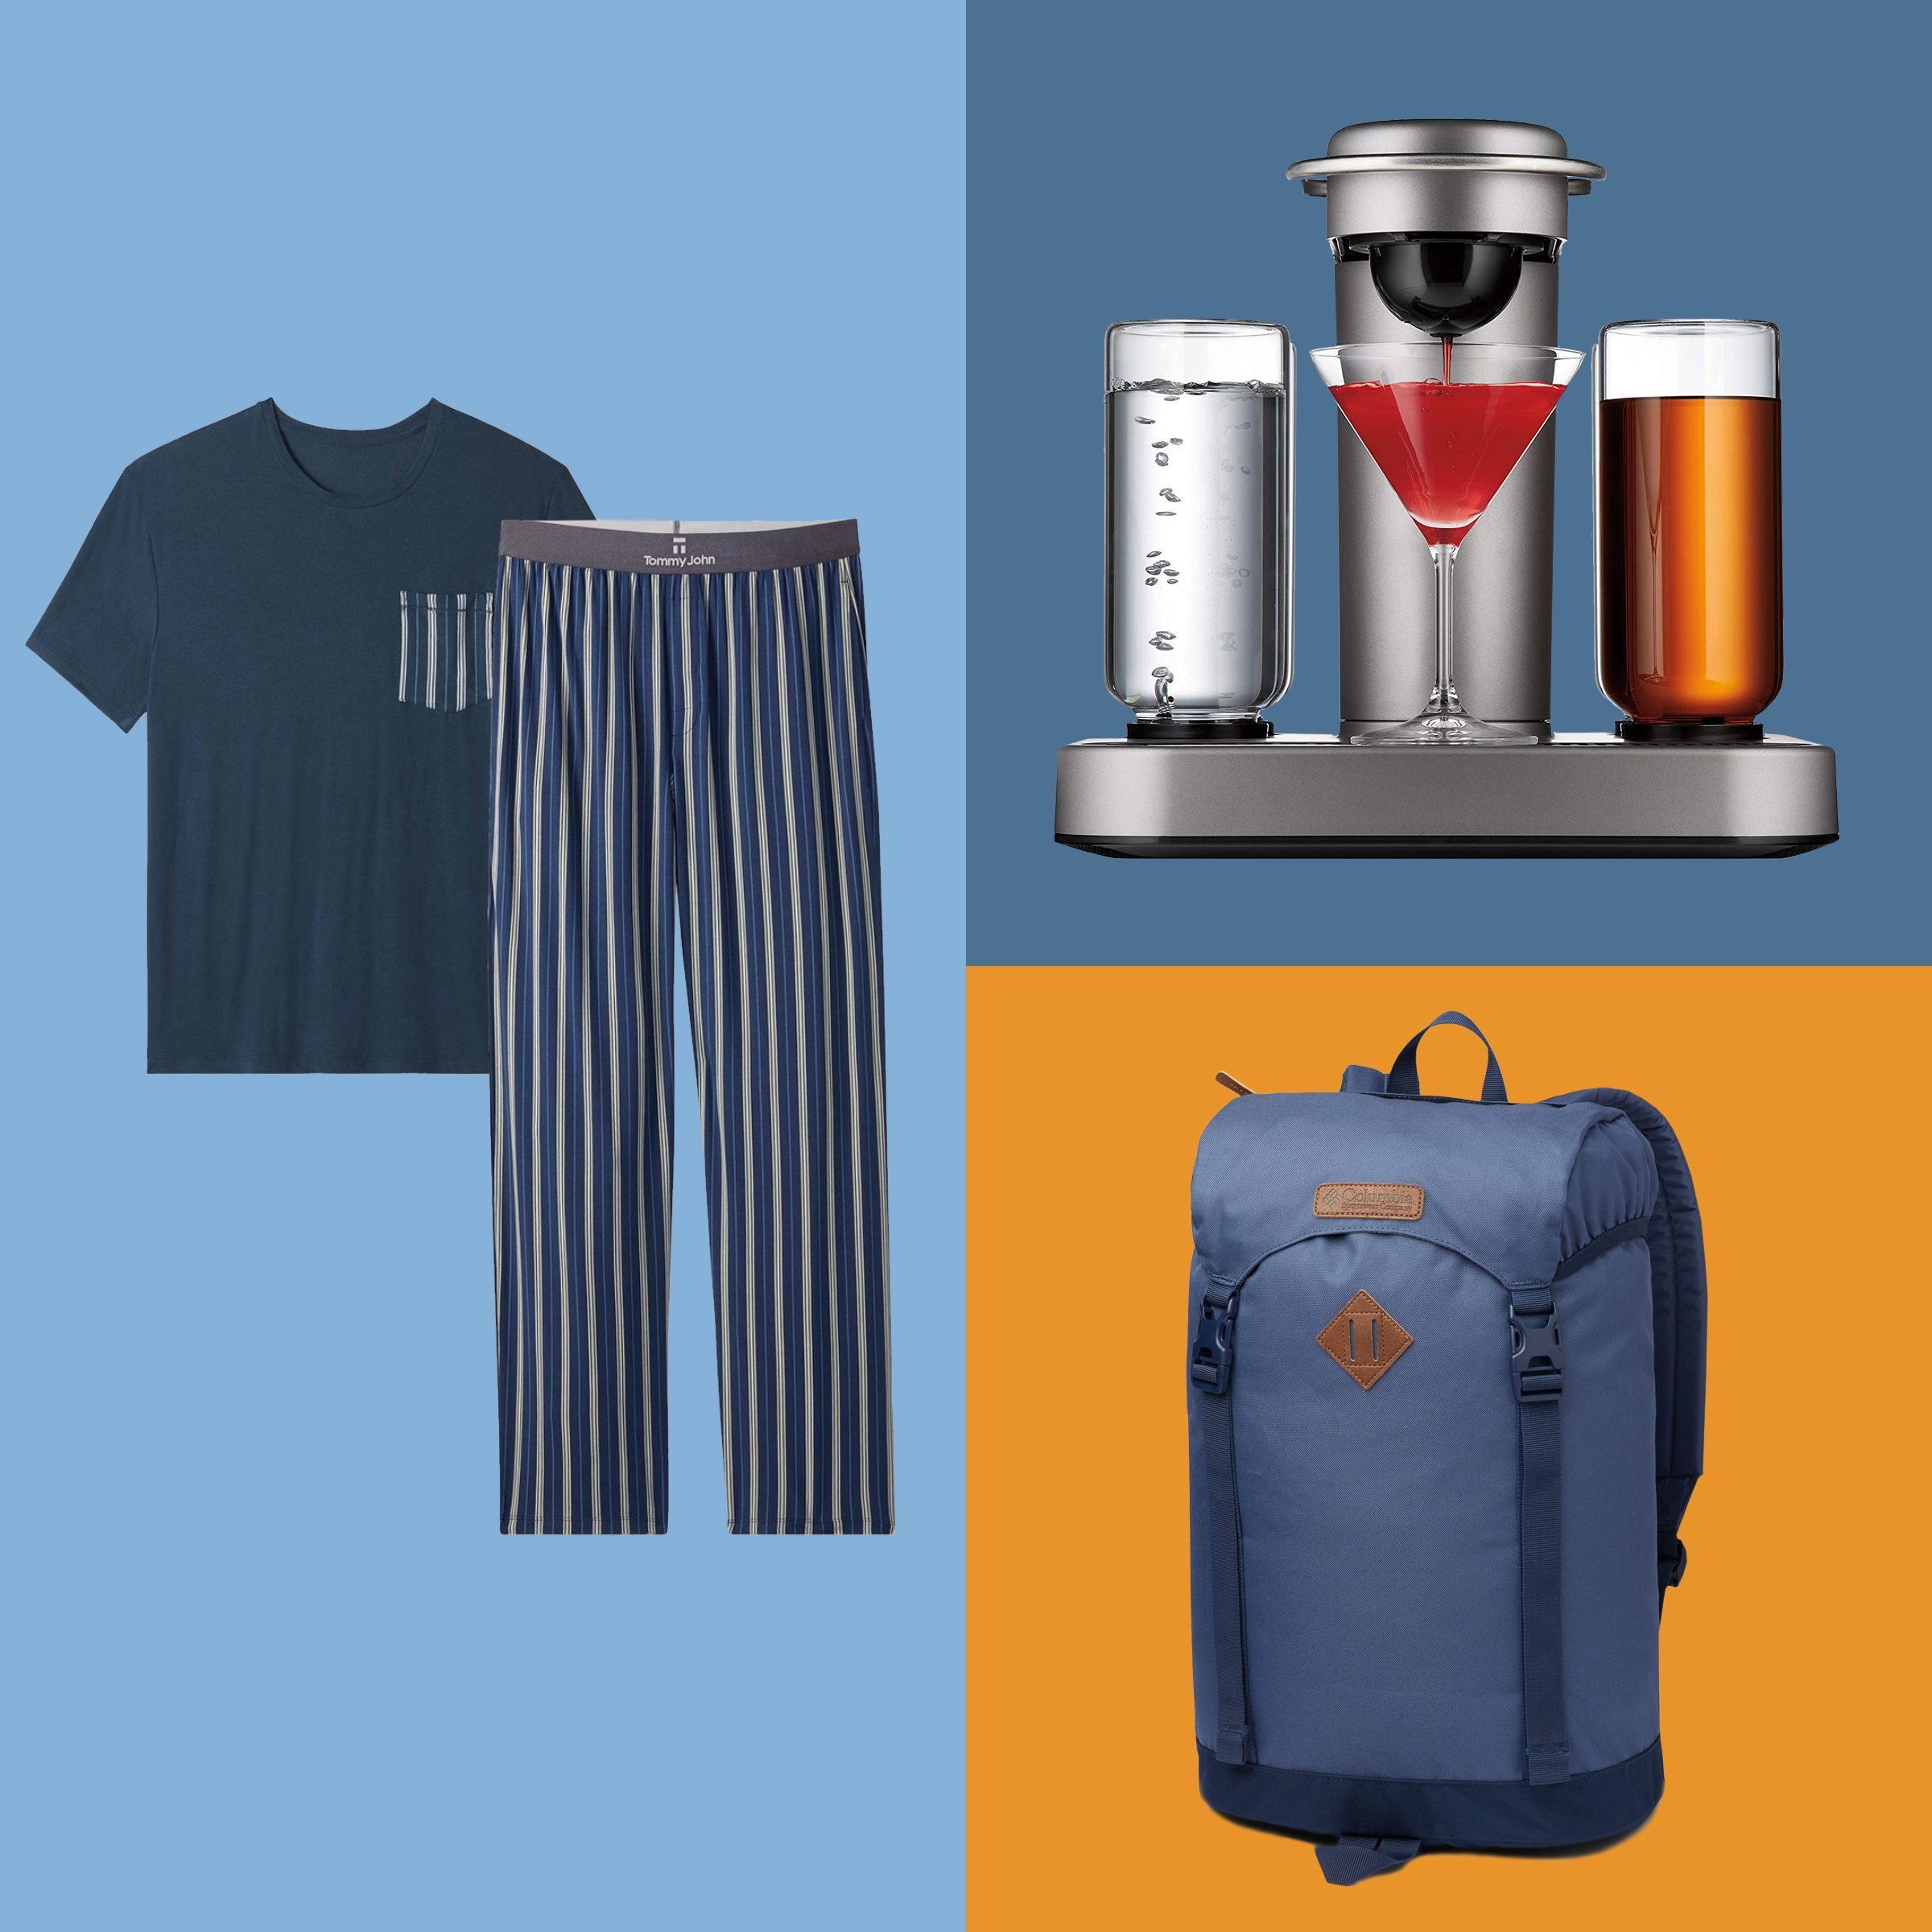 48 Great Gift Ideas for Dad That Will Make You His Number One Son